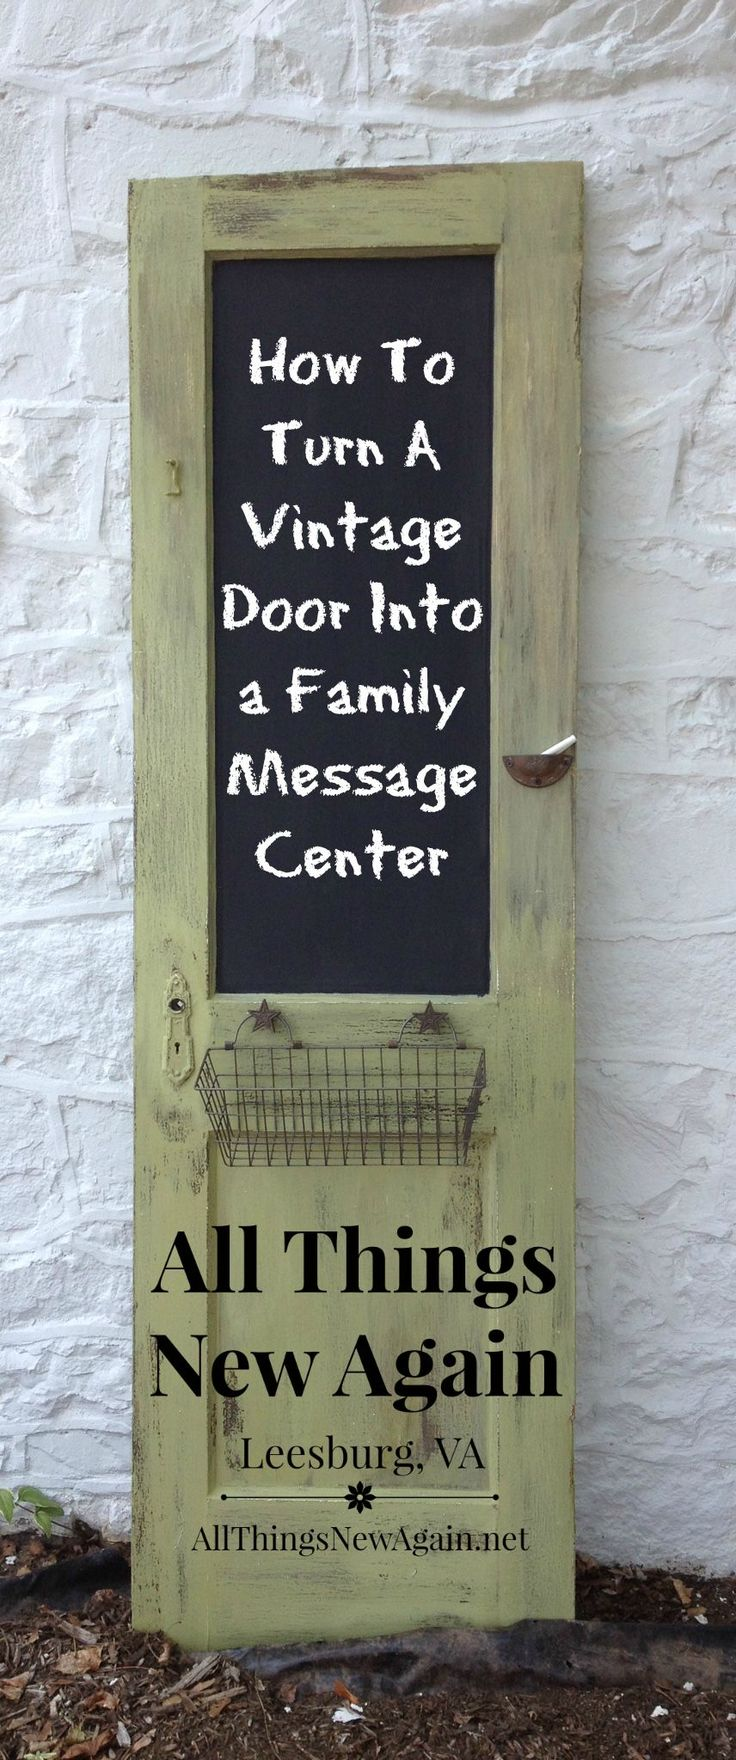 How To Turn a Vintage Door into a Family Message Center ~ www.AllThingsNewAgain.net